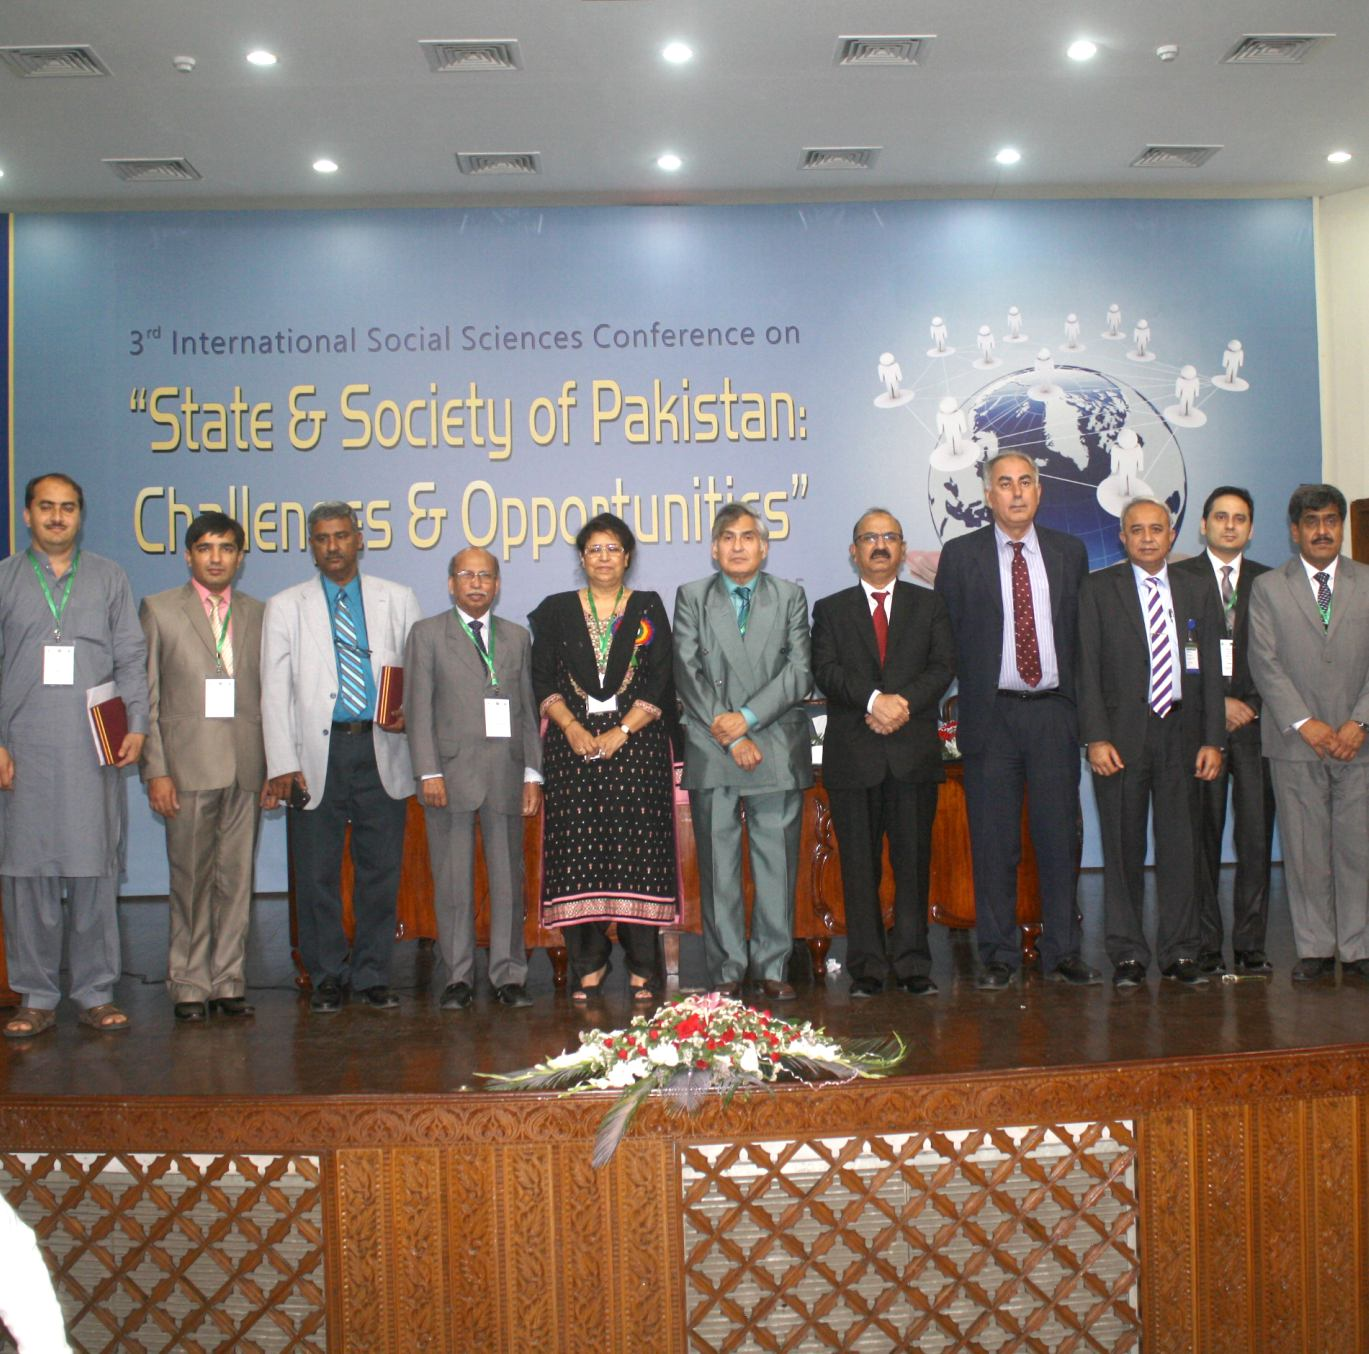 Group photo of participants of conference on social sciences held at the HEC, Islamabad